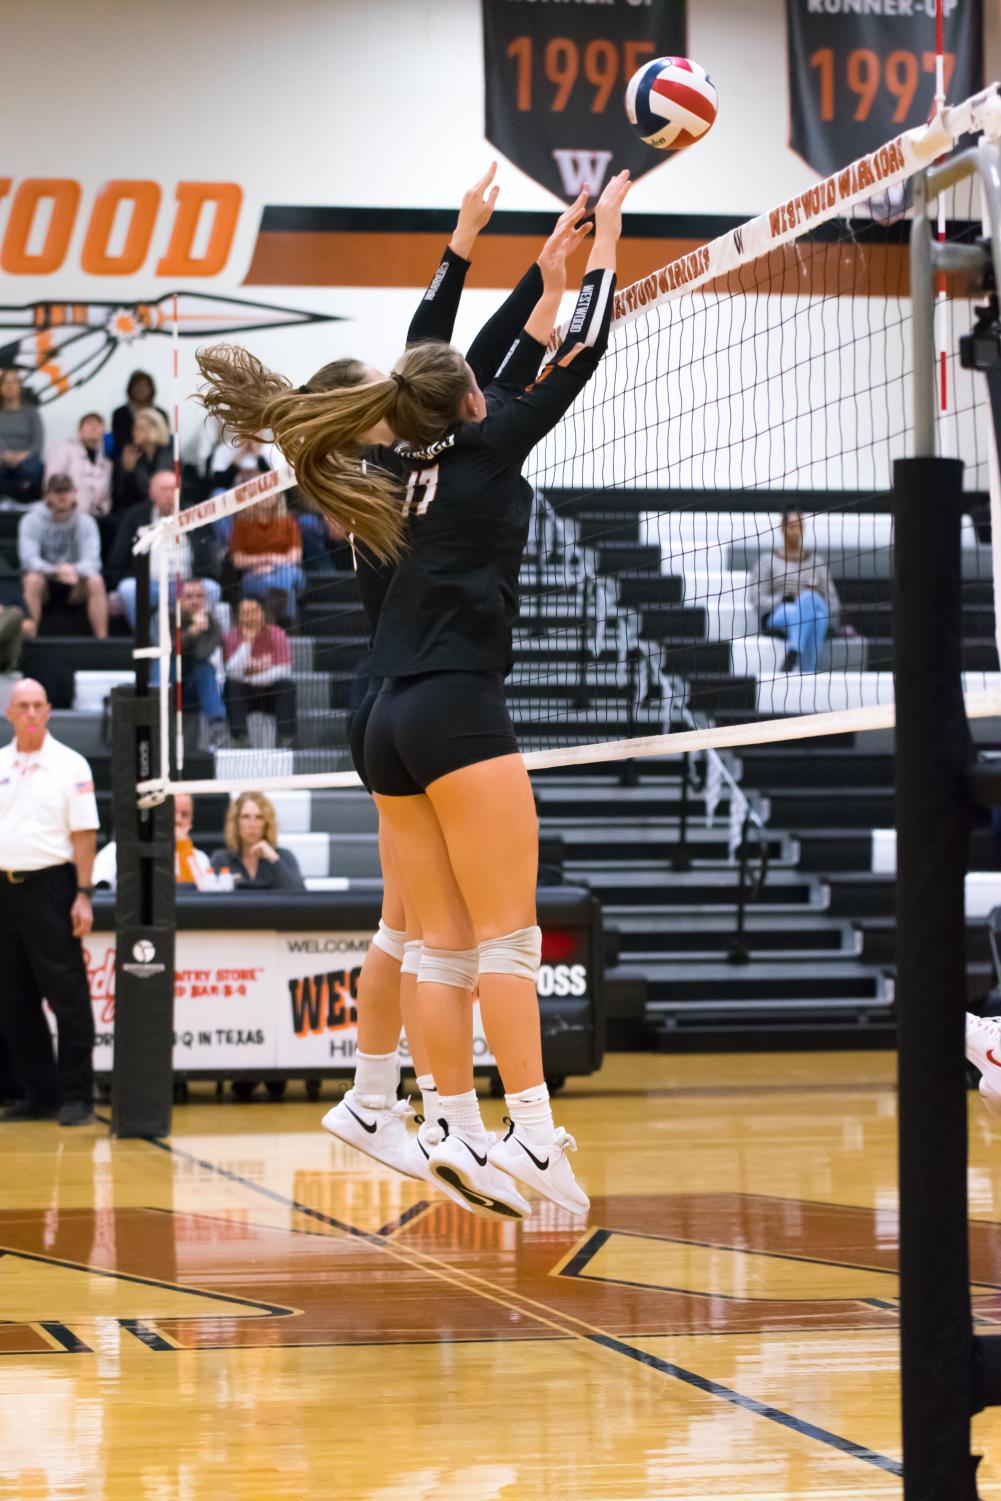 Jumping+in+unison%2C+Audrey+Quesnel+%2720+and+Kenzie+Beckham+%2721+block+the+oncoming+ball.+The+Lady+Warriors+ended+up+earning+the+point+and+kept+their+early+on+lead+during+the+first+set.